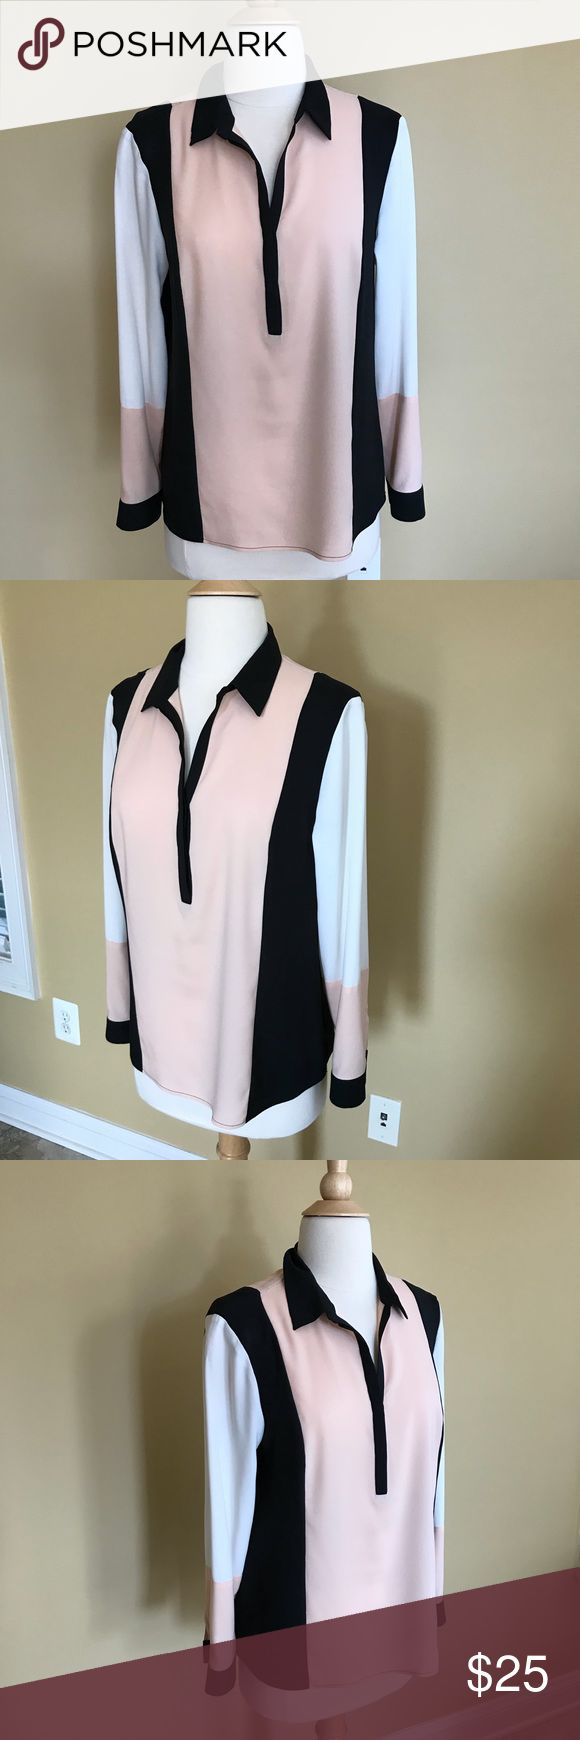 """Ann Taylor Color Block L/S Dress Blouse Smart and Sophisticated Color Block Long Sleeve Blouse from Ann Taylor. Perfect for Work with a Suit  or out to Dinner! Soft Peach, Cream and Black with a 2 Button Closure. 20"""" across the bust.  23"""" from top of the shoulder to hem. 22"""" sleeve length. 100% poly. Excellent condition! Ann Taylor Tops Blouses"""